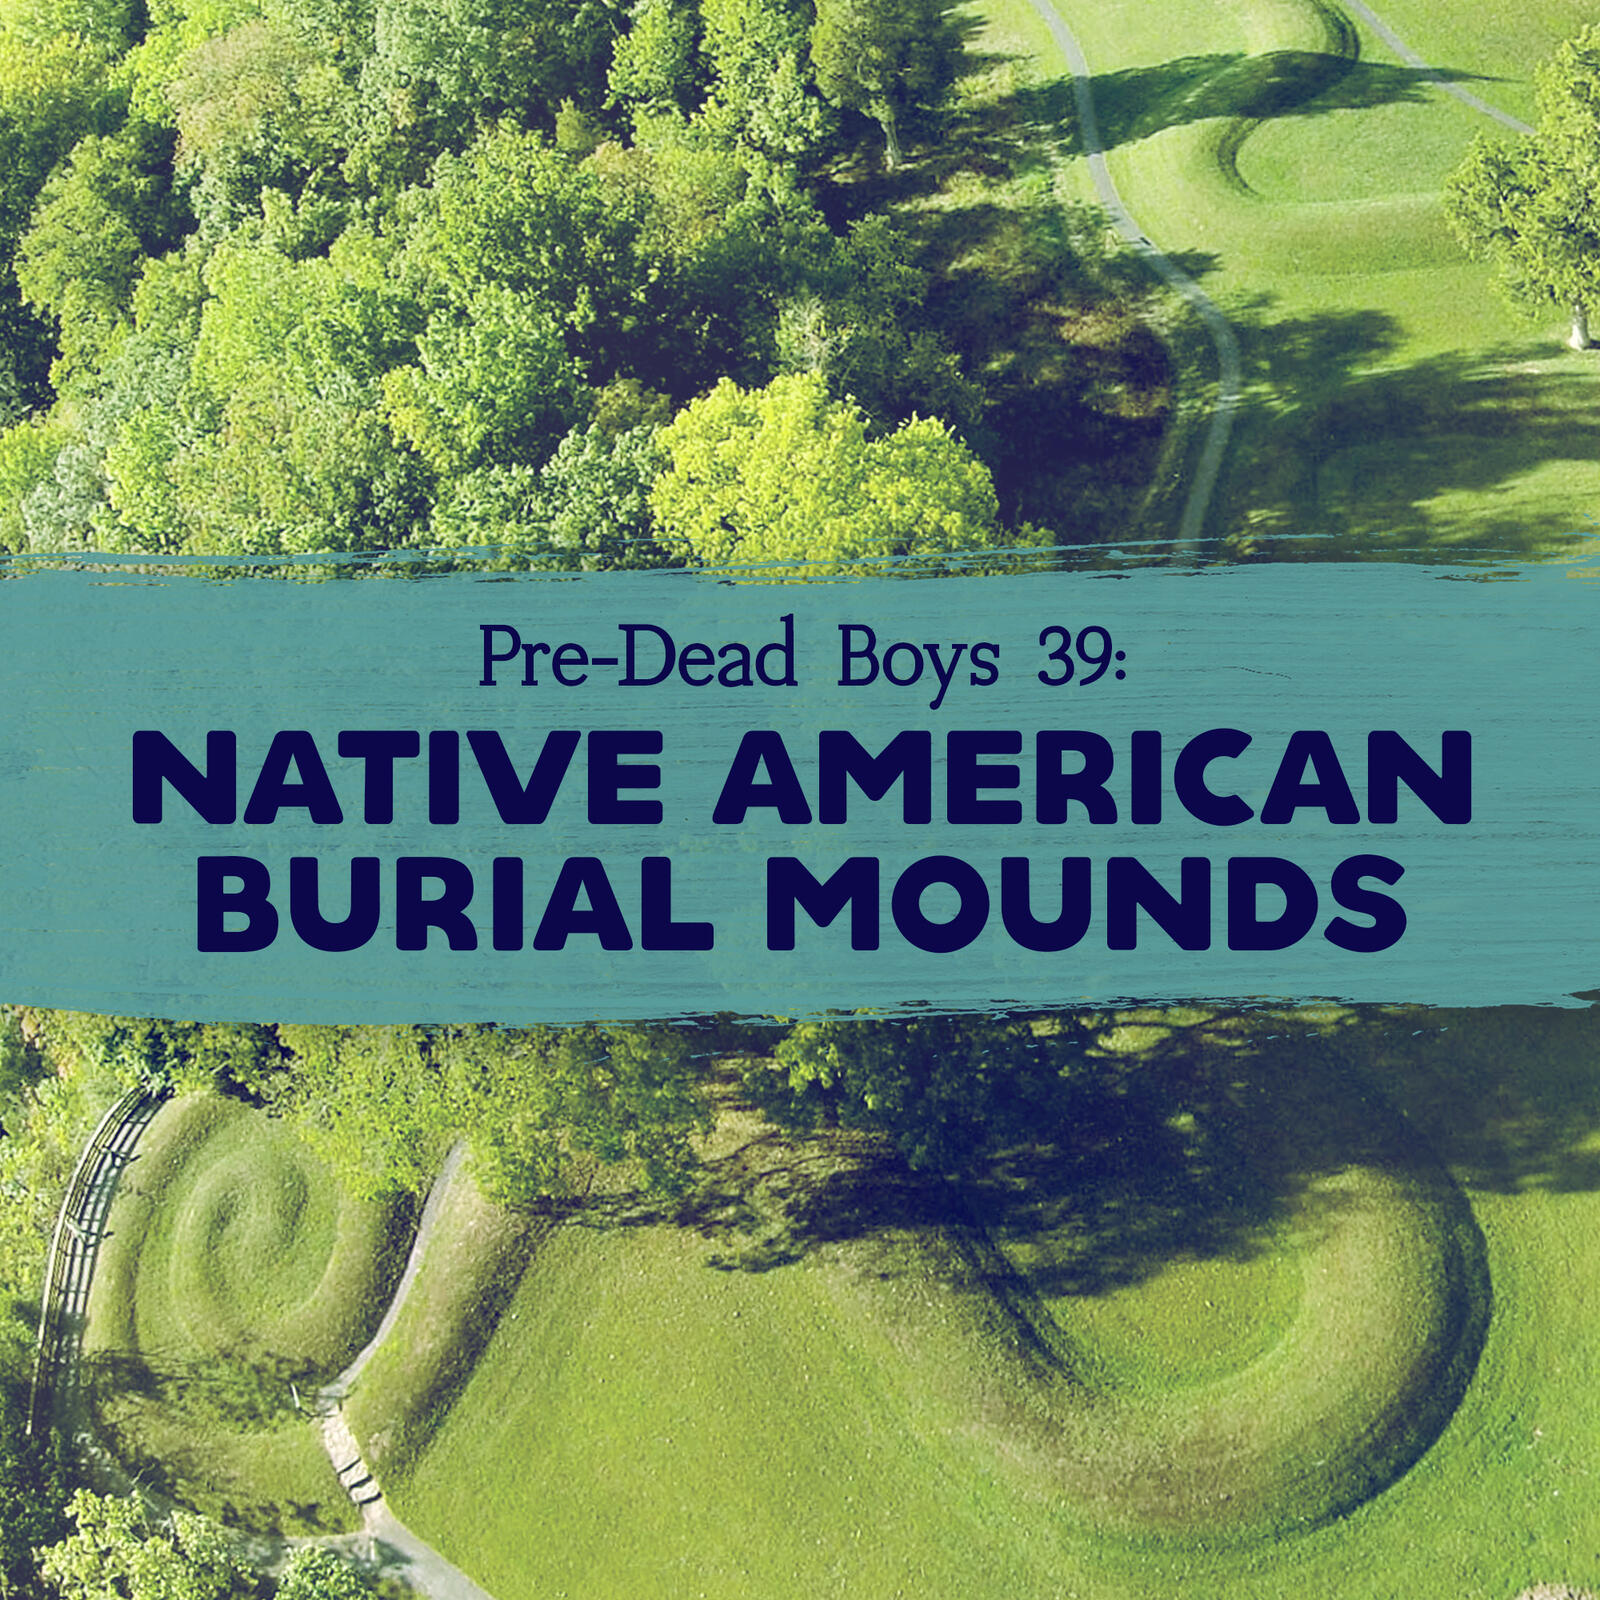 39: Native American Burial Mounds